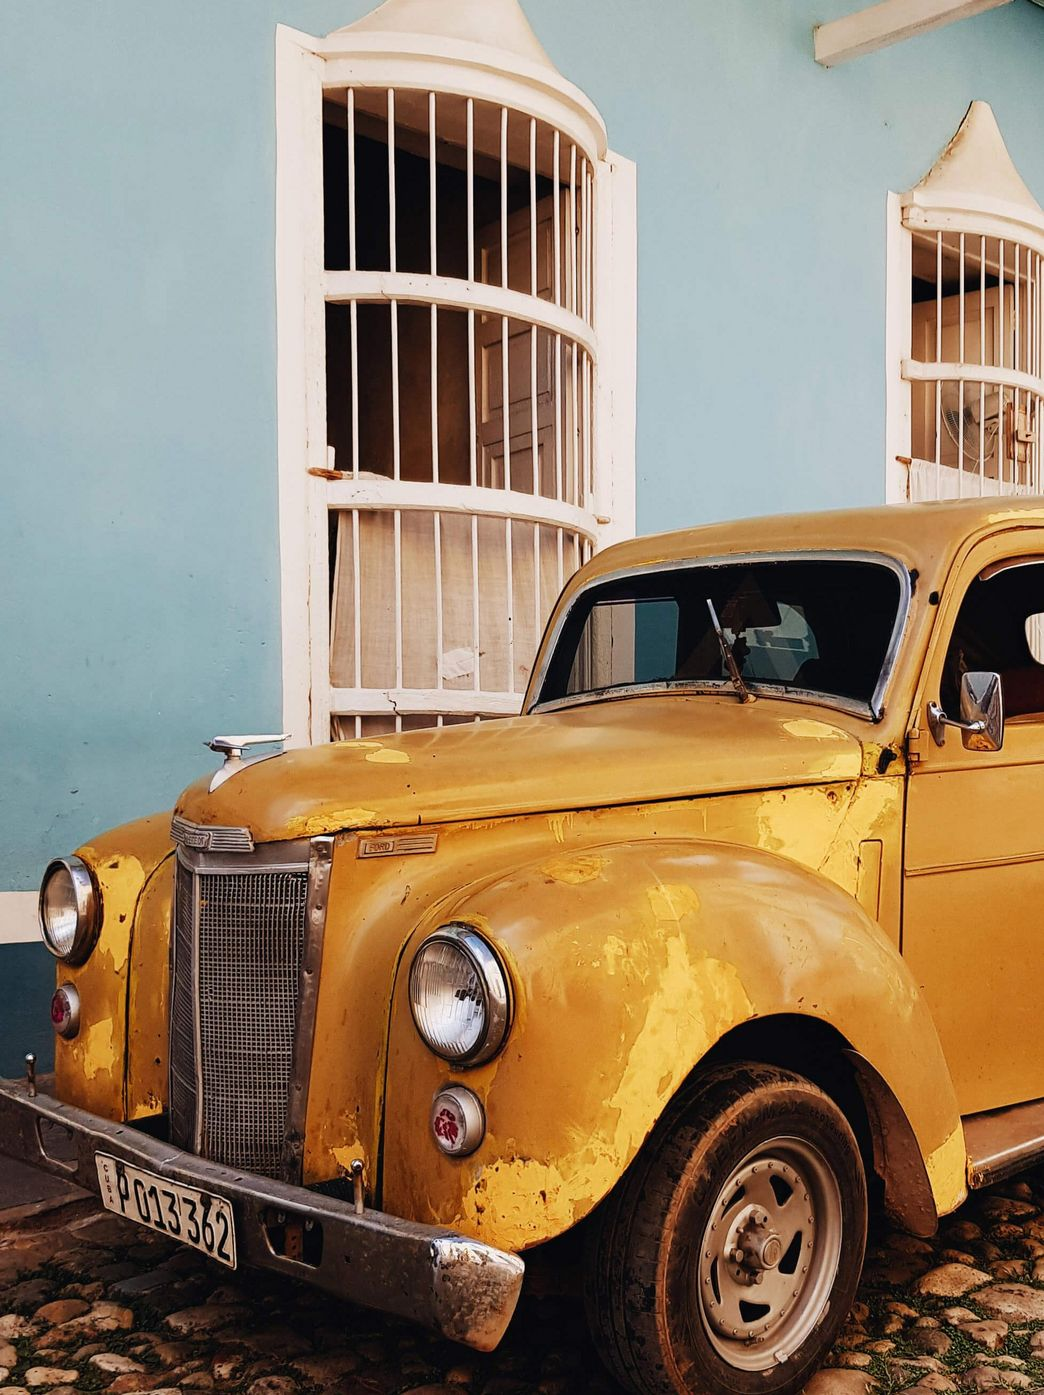 Oldtimer in Trinidad auf Cuba Rundreise mit ITS Coop Travel